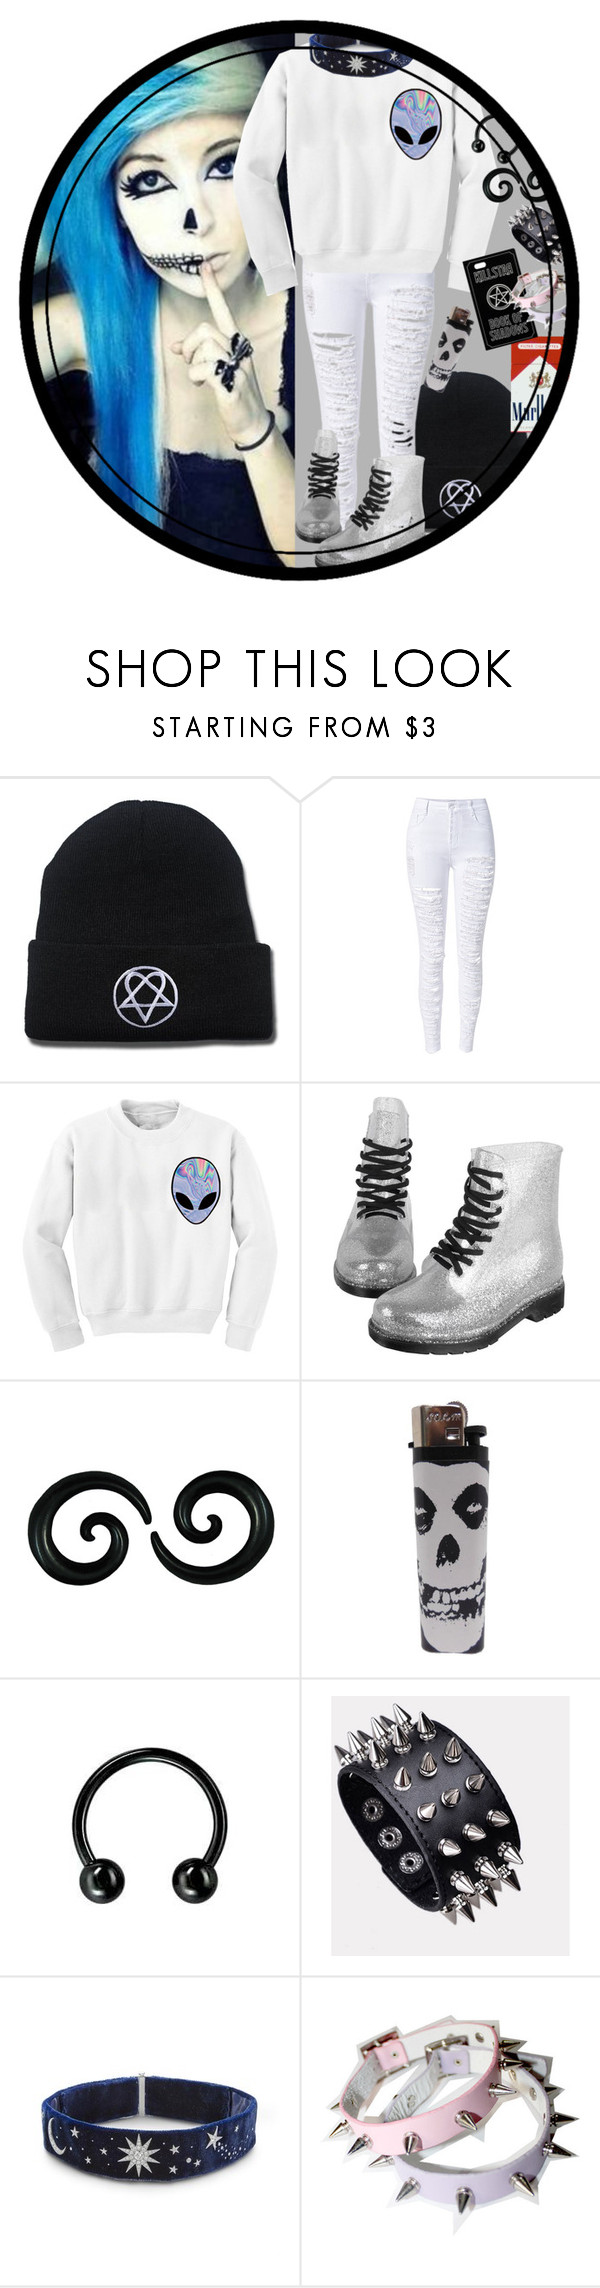 """Glittery Alien"" by chemicalfallout249 on Polyvore featuring WithChic, Chicnova Fashion and alternative"